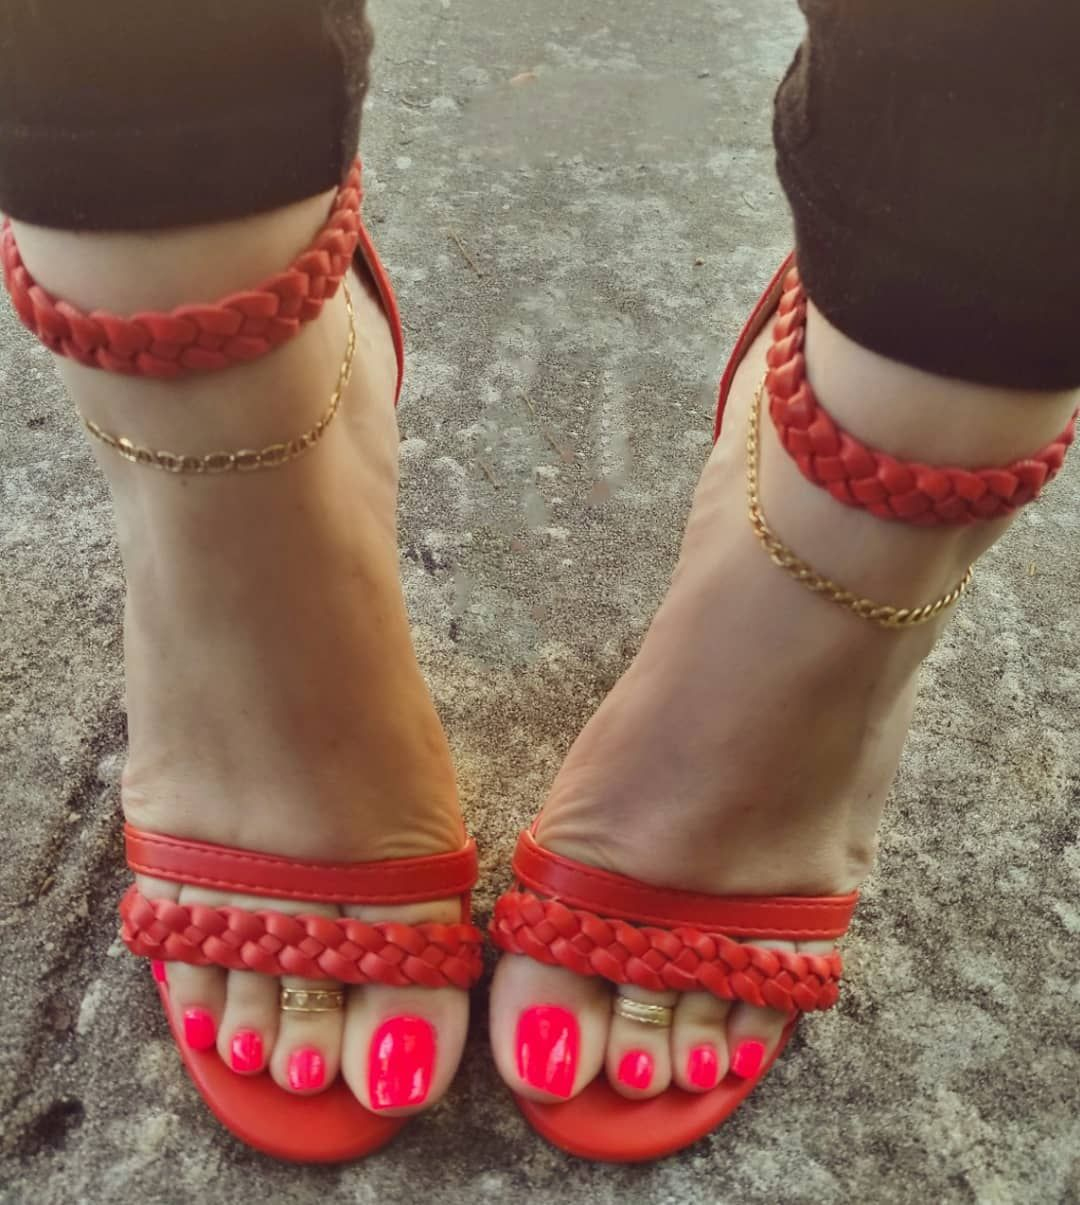 Foot fetish bare feet in heels red toes - YouTube